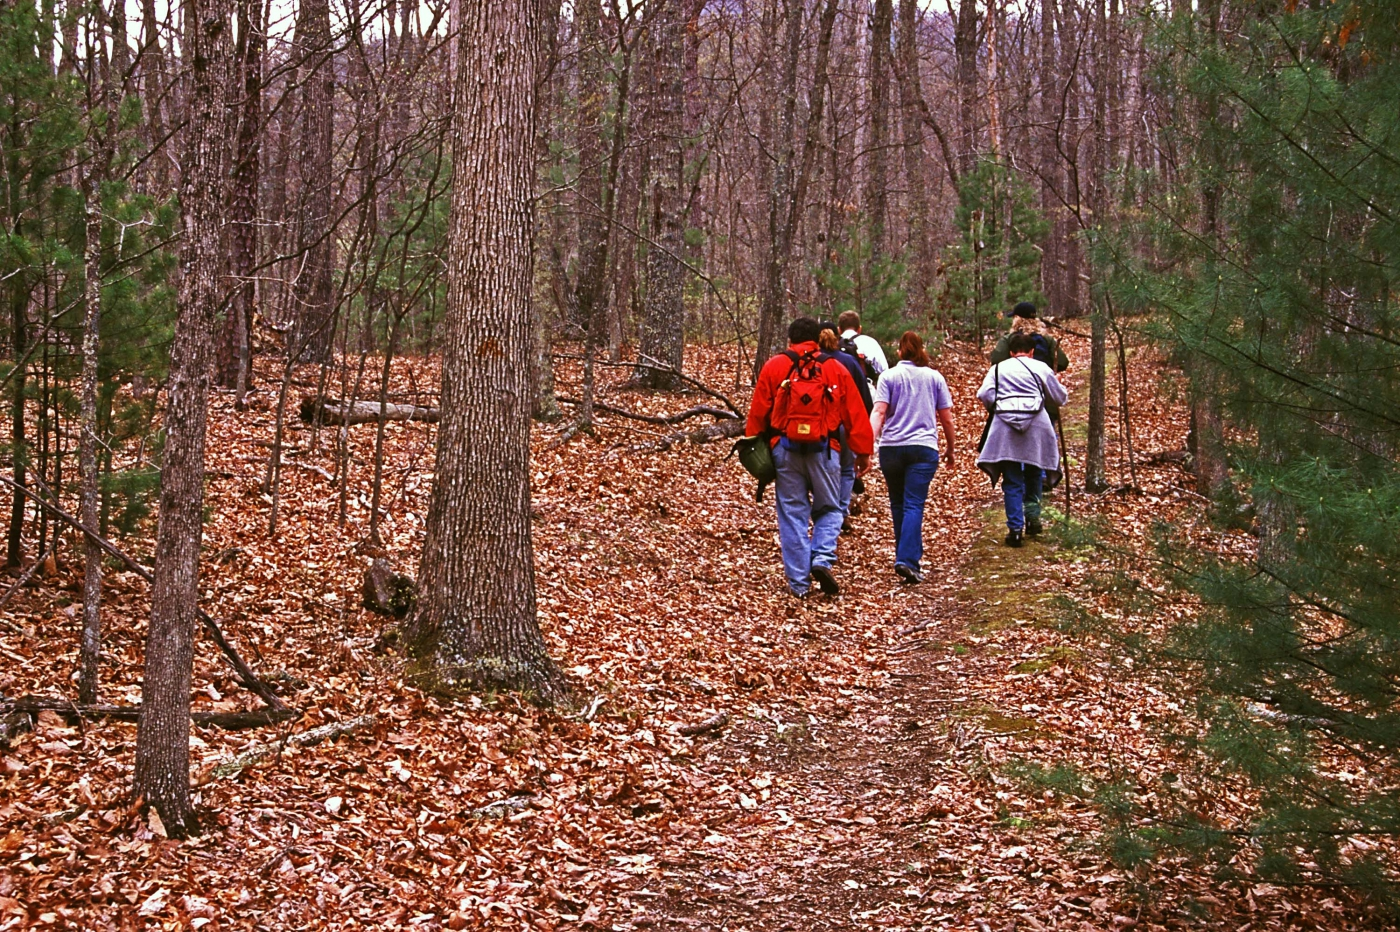 Greenbrier State Forest provides over 5,100 acres of heavily forested, mountainous terrain for outdoor recreation